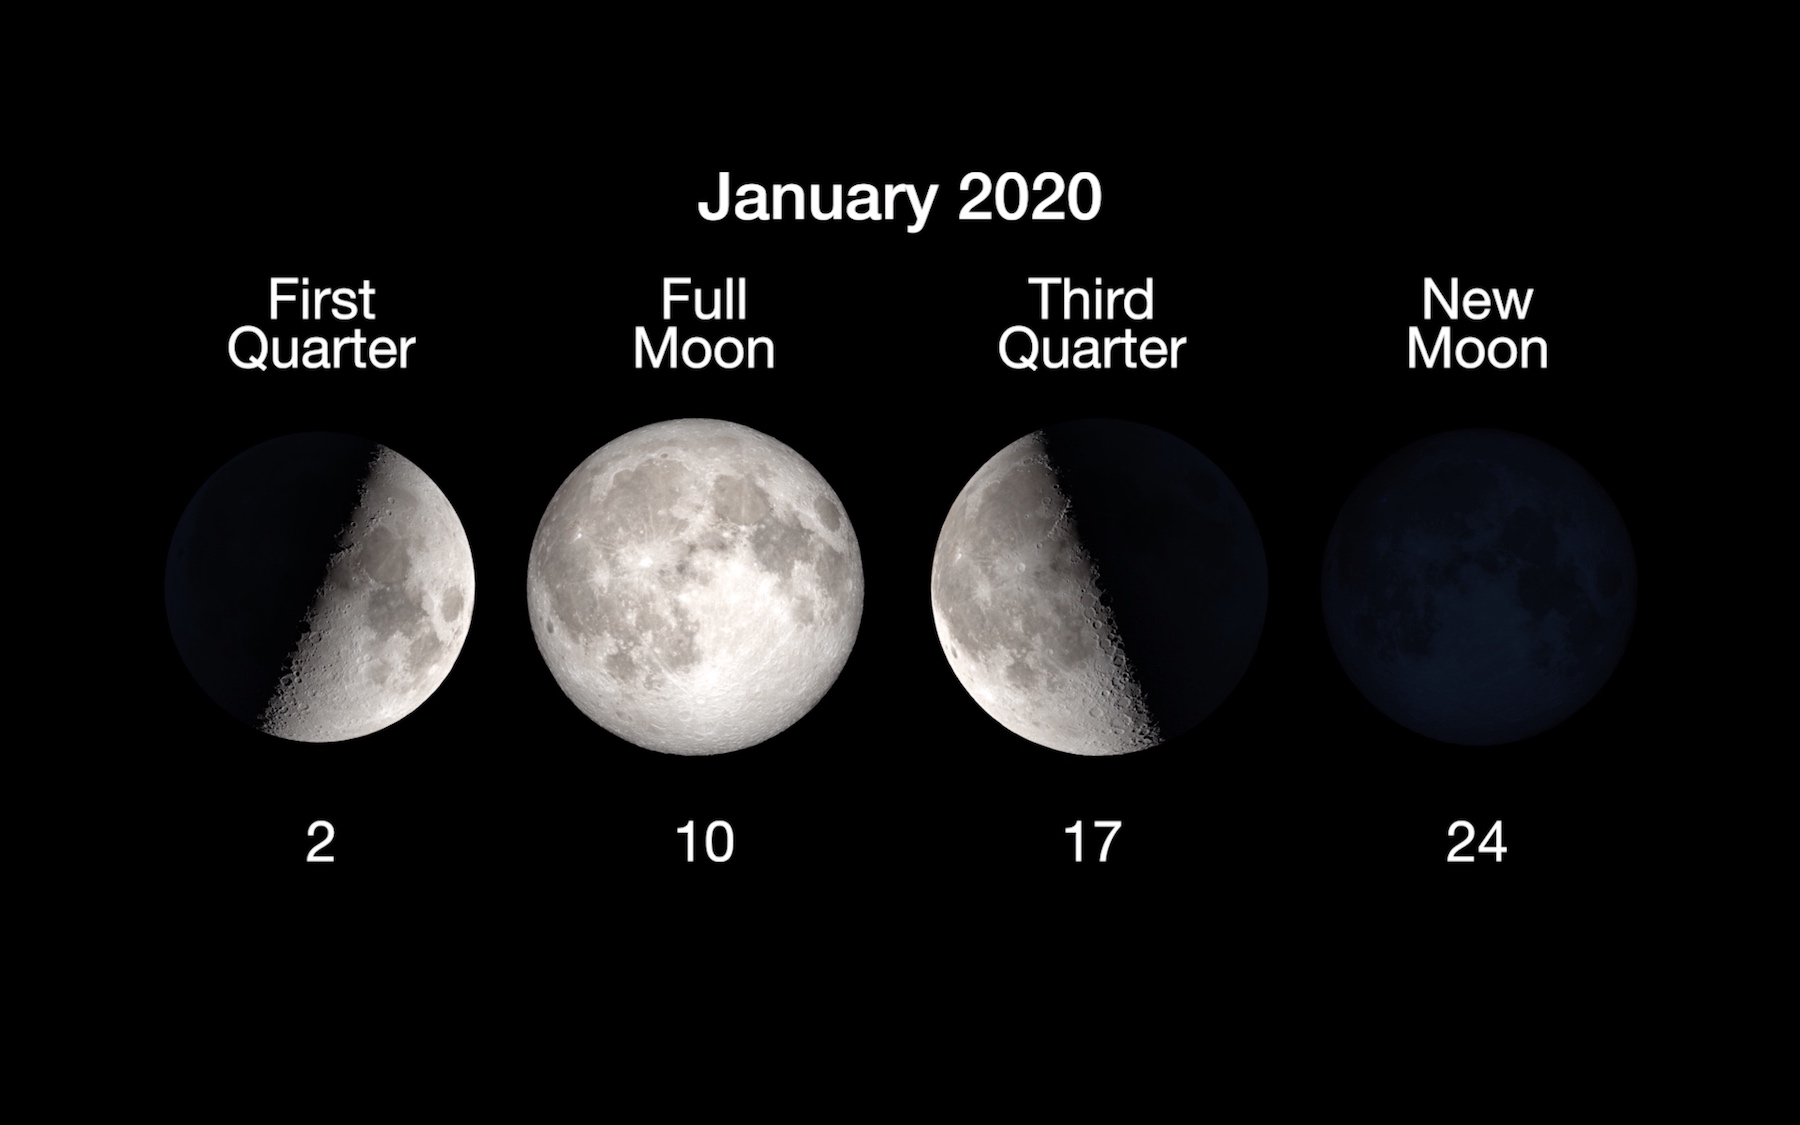 chart showing different amounts of illumination of the moon